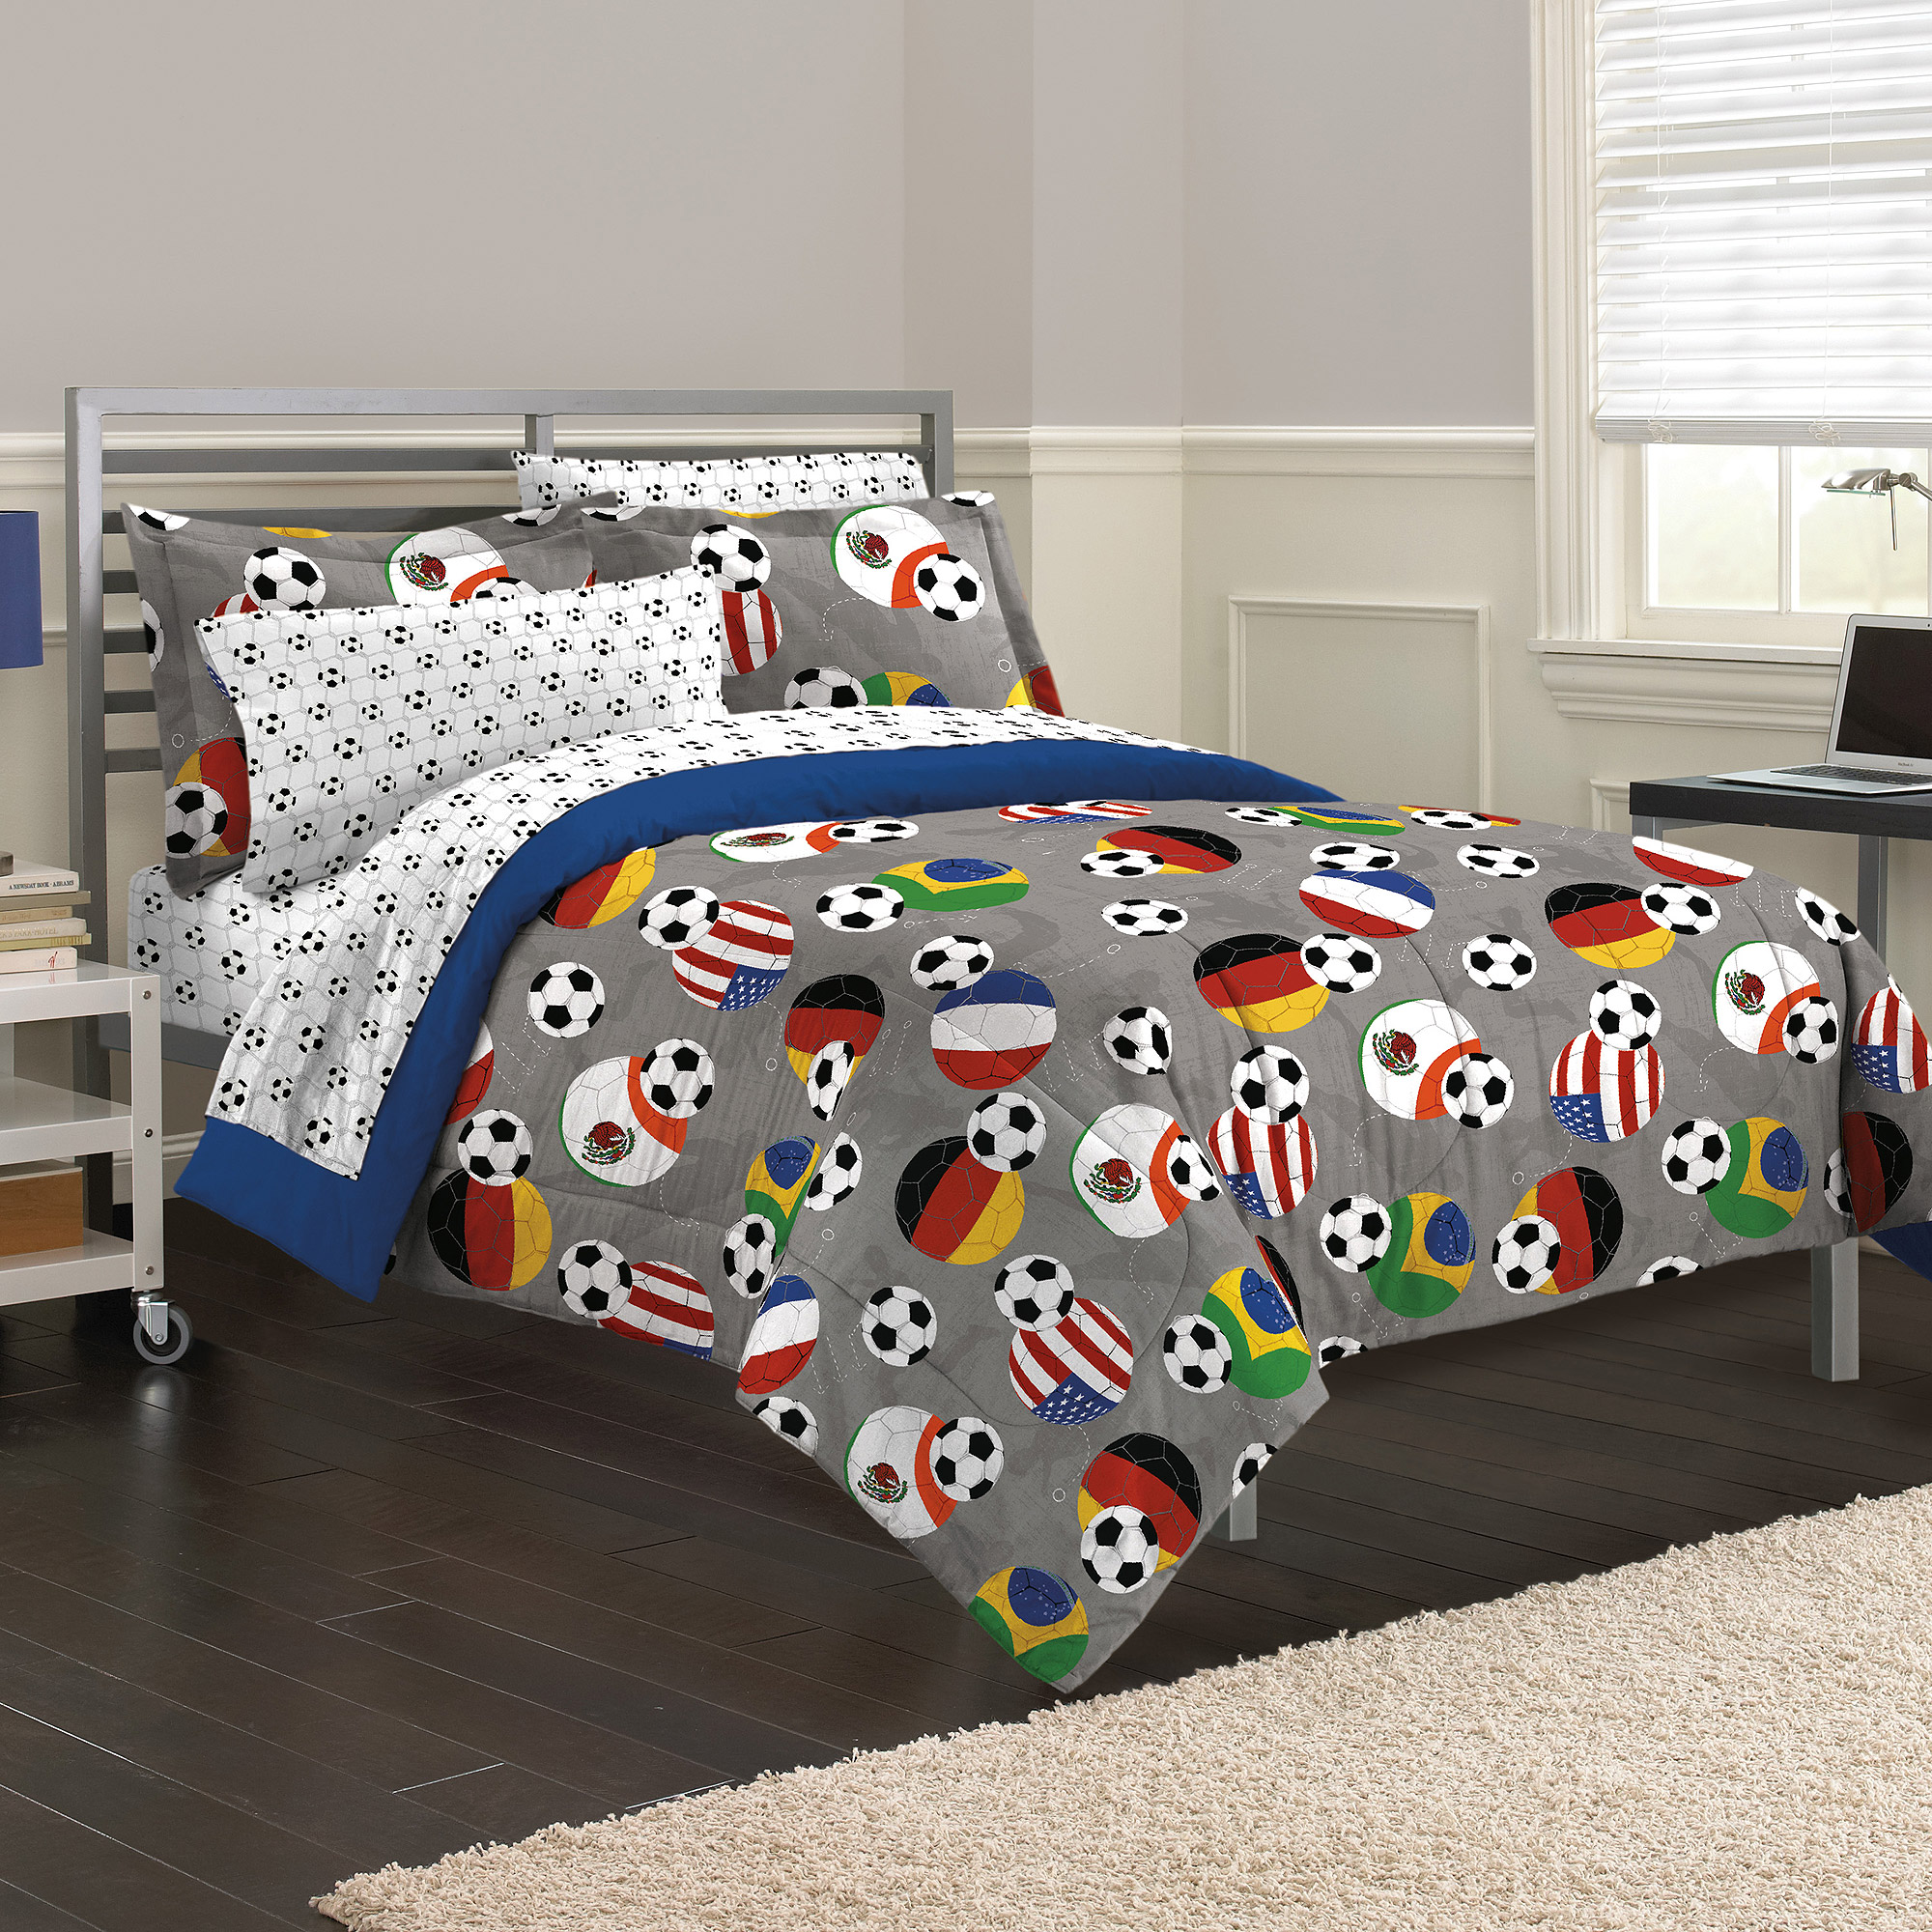 bedding comforter mainstays com a walmart in coordinating bed bag sports ip set cabin